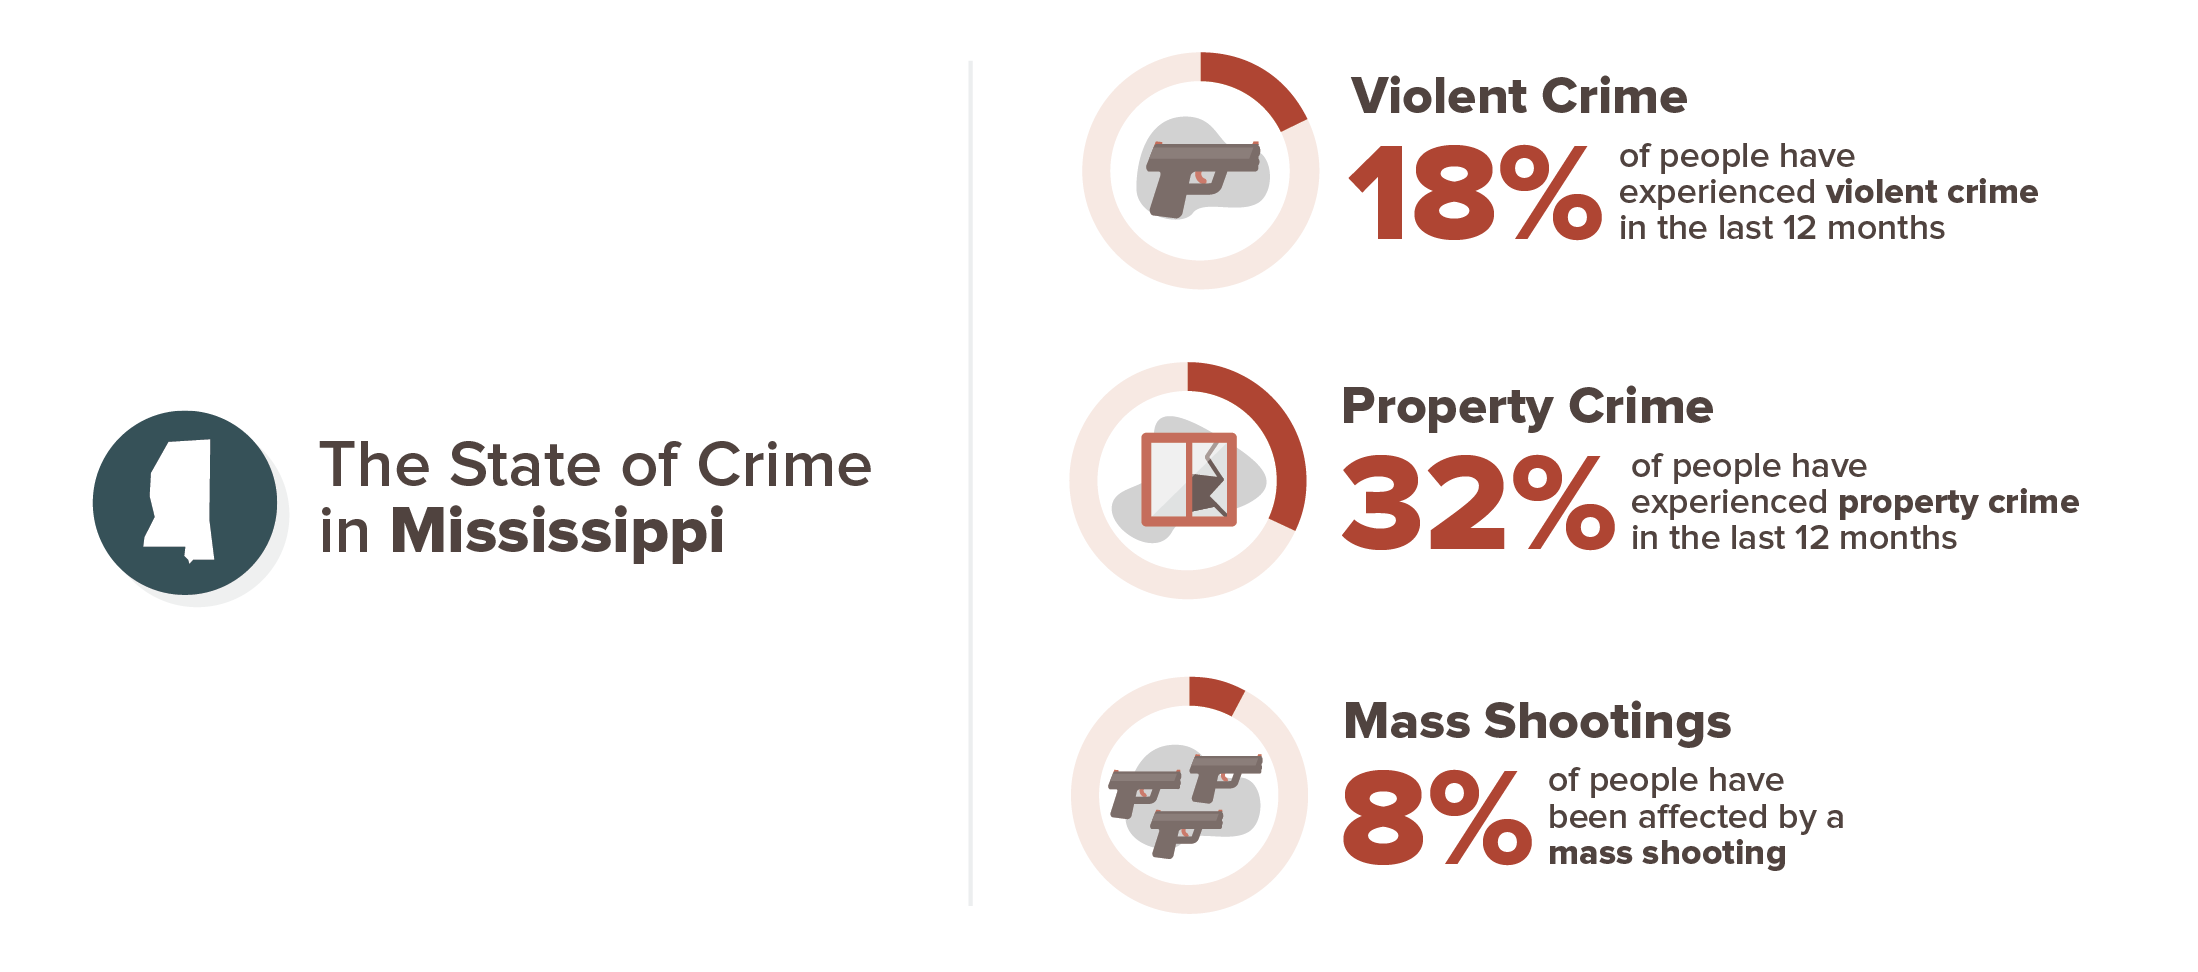 Mississippi crime experience infographic; 18% violent crime, 32% property crime, 8% mass shooting